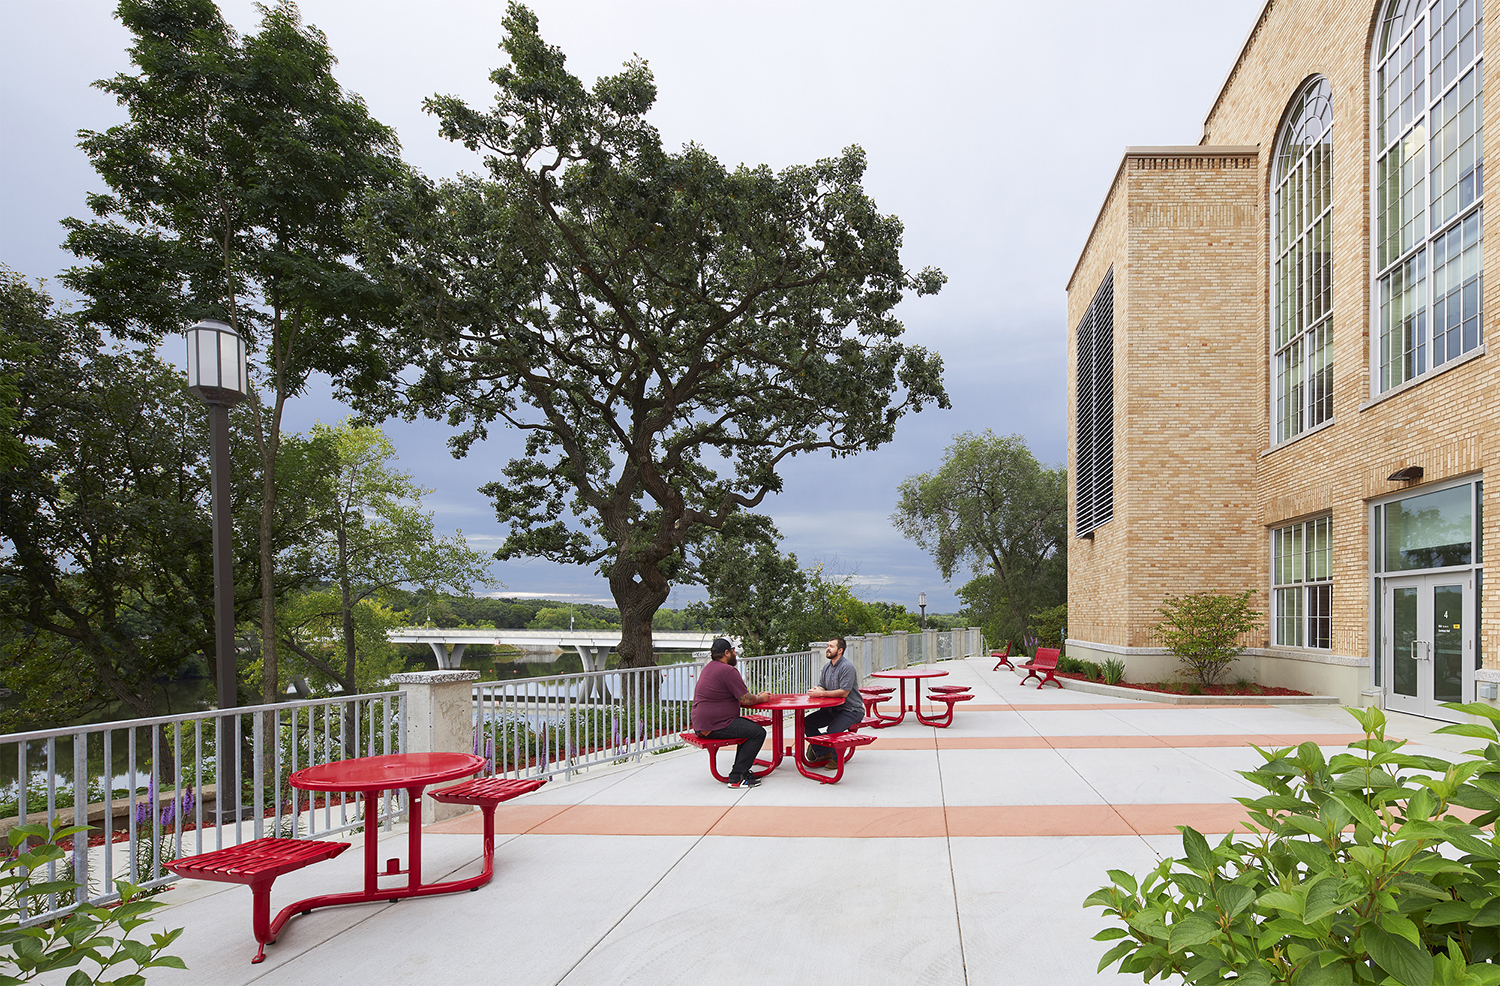 The patio offers views of the Mississippi River and offers a calm and inviting place for students to talk, eat, relax or study.